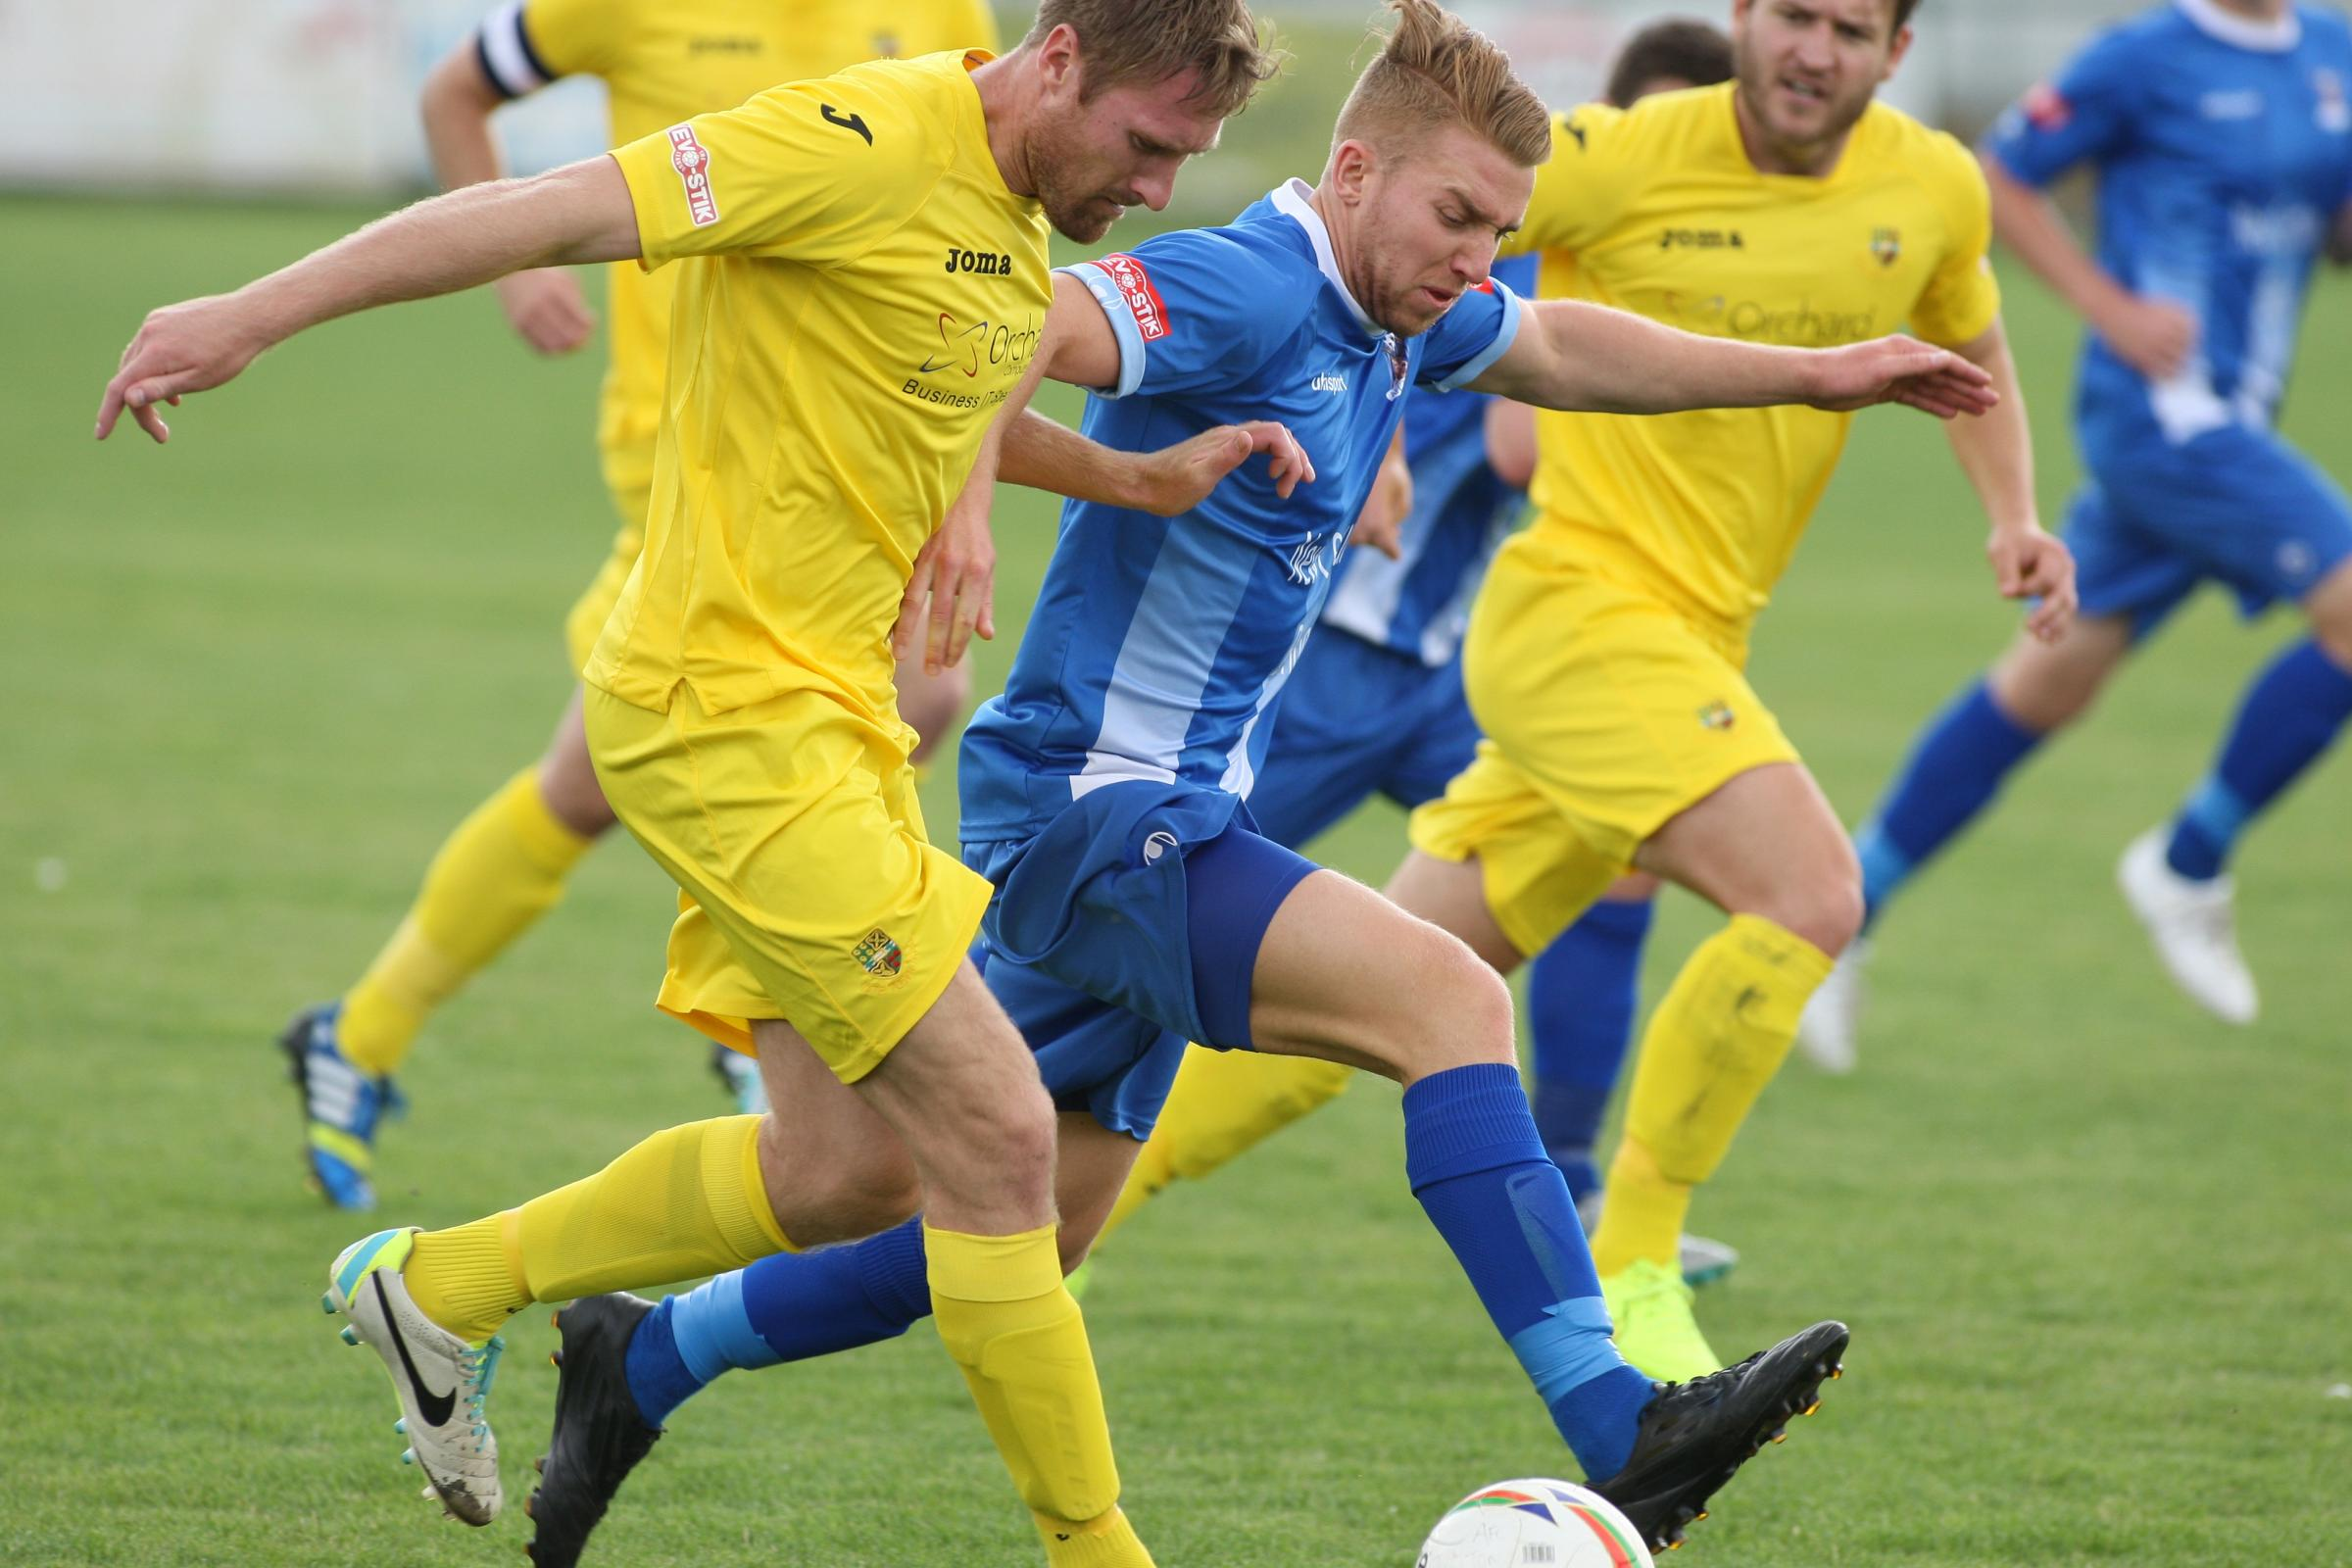 AFC Totton's Craig Feeney (blue)